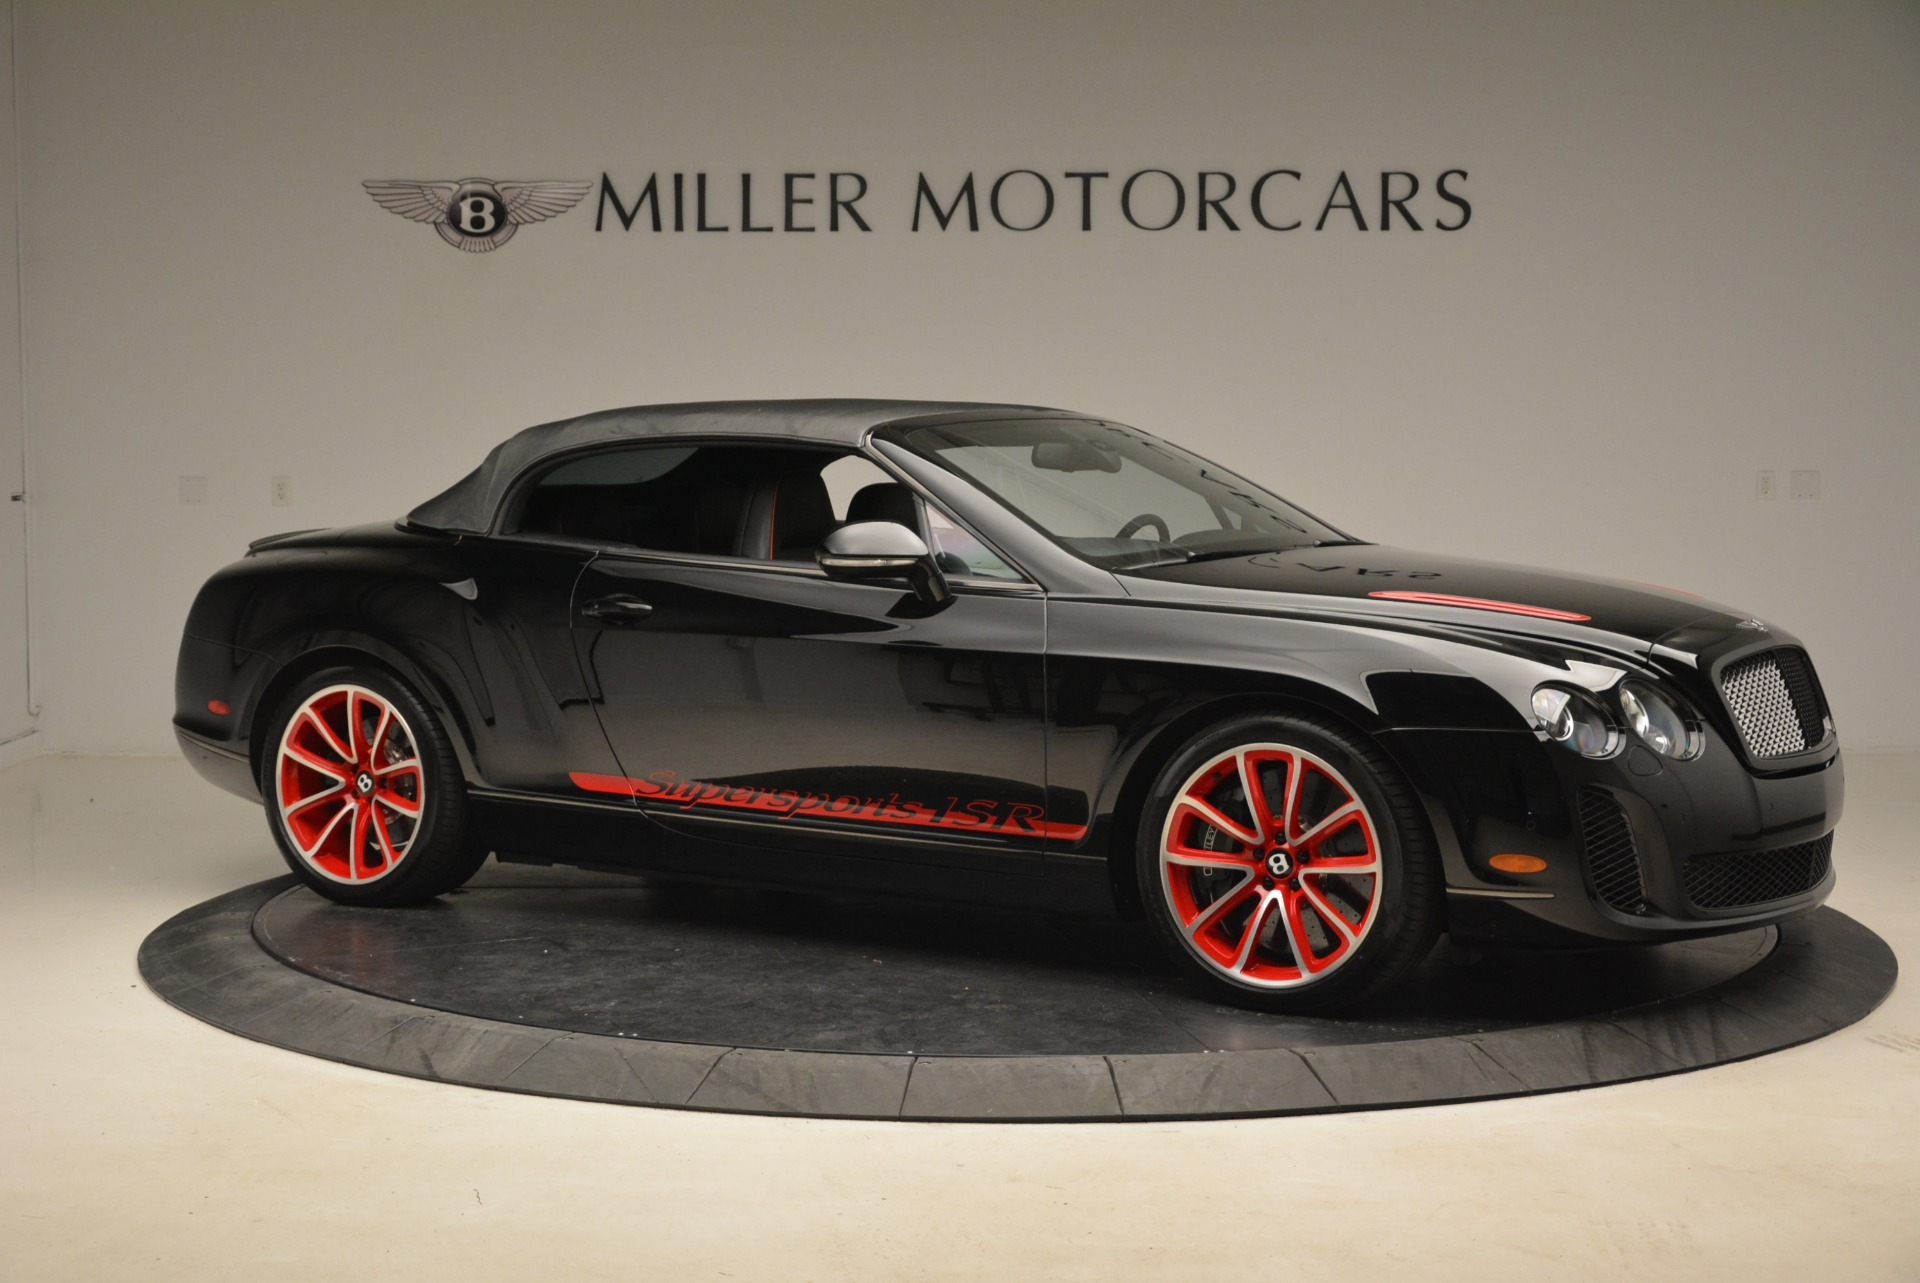 Used 2013 Bentley Continental GT Supersports Convertible ISR For Sale In Greenwich, CT 2151_p23